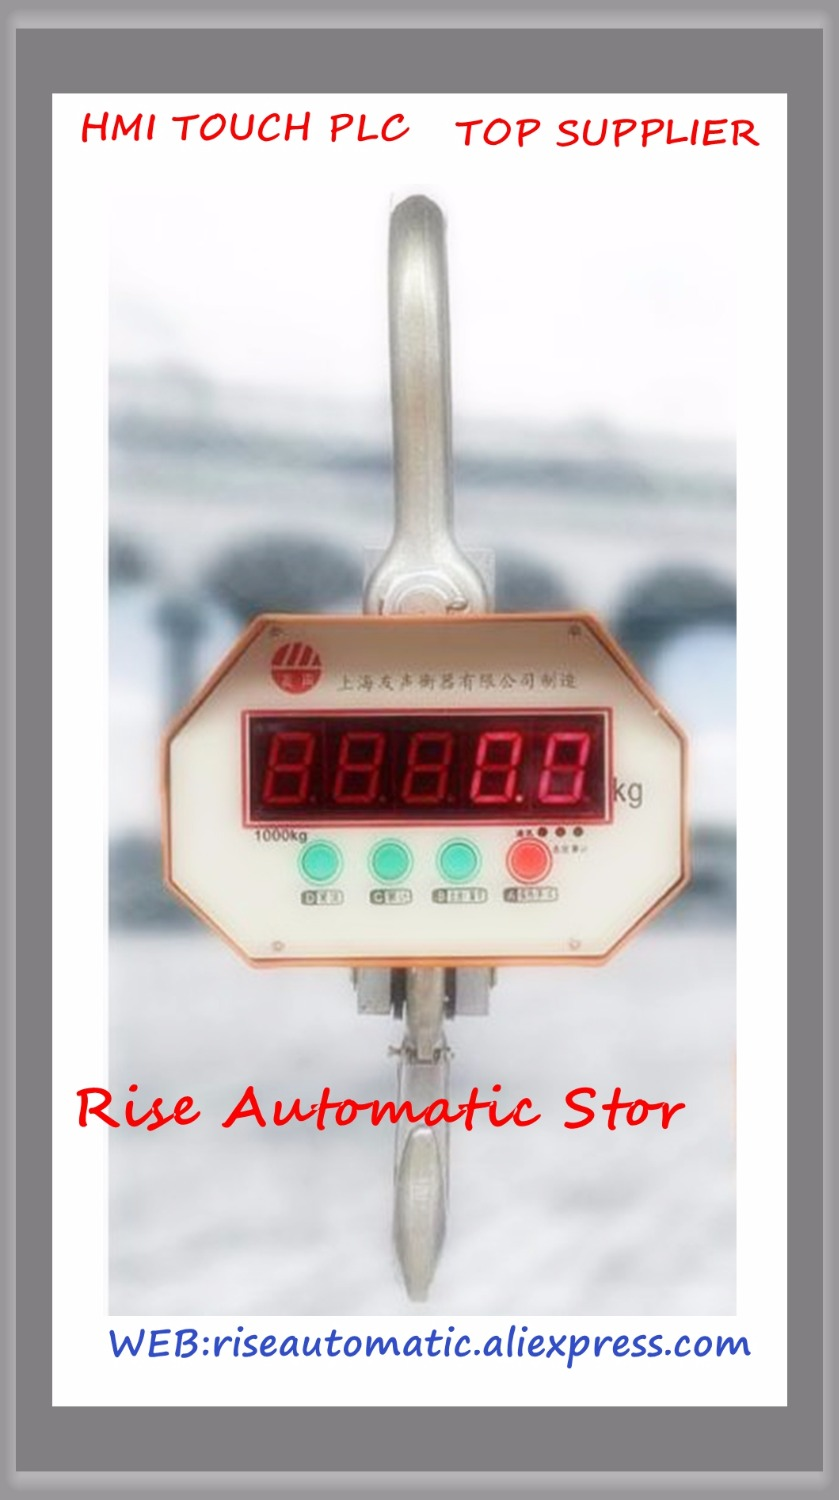 NEW Electronic Crane Scale 3T 3000KG industrial Digital Crane Scale hook hanging scale 30kg high accuracy electronic price computing weighing scales digital hanging hook crane scale